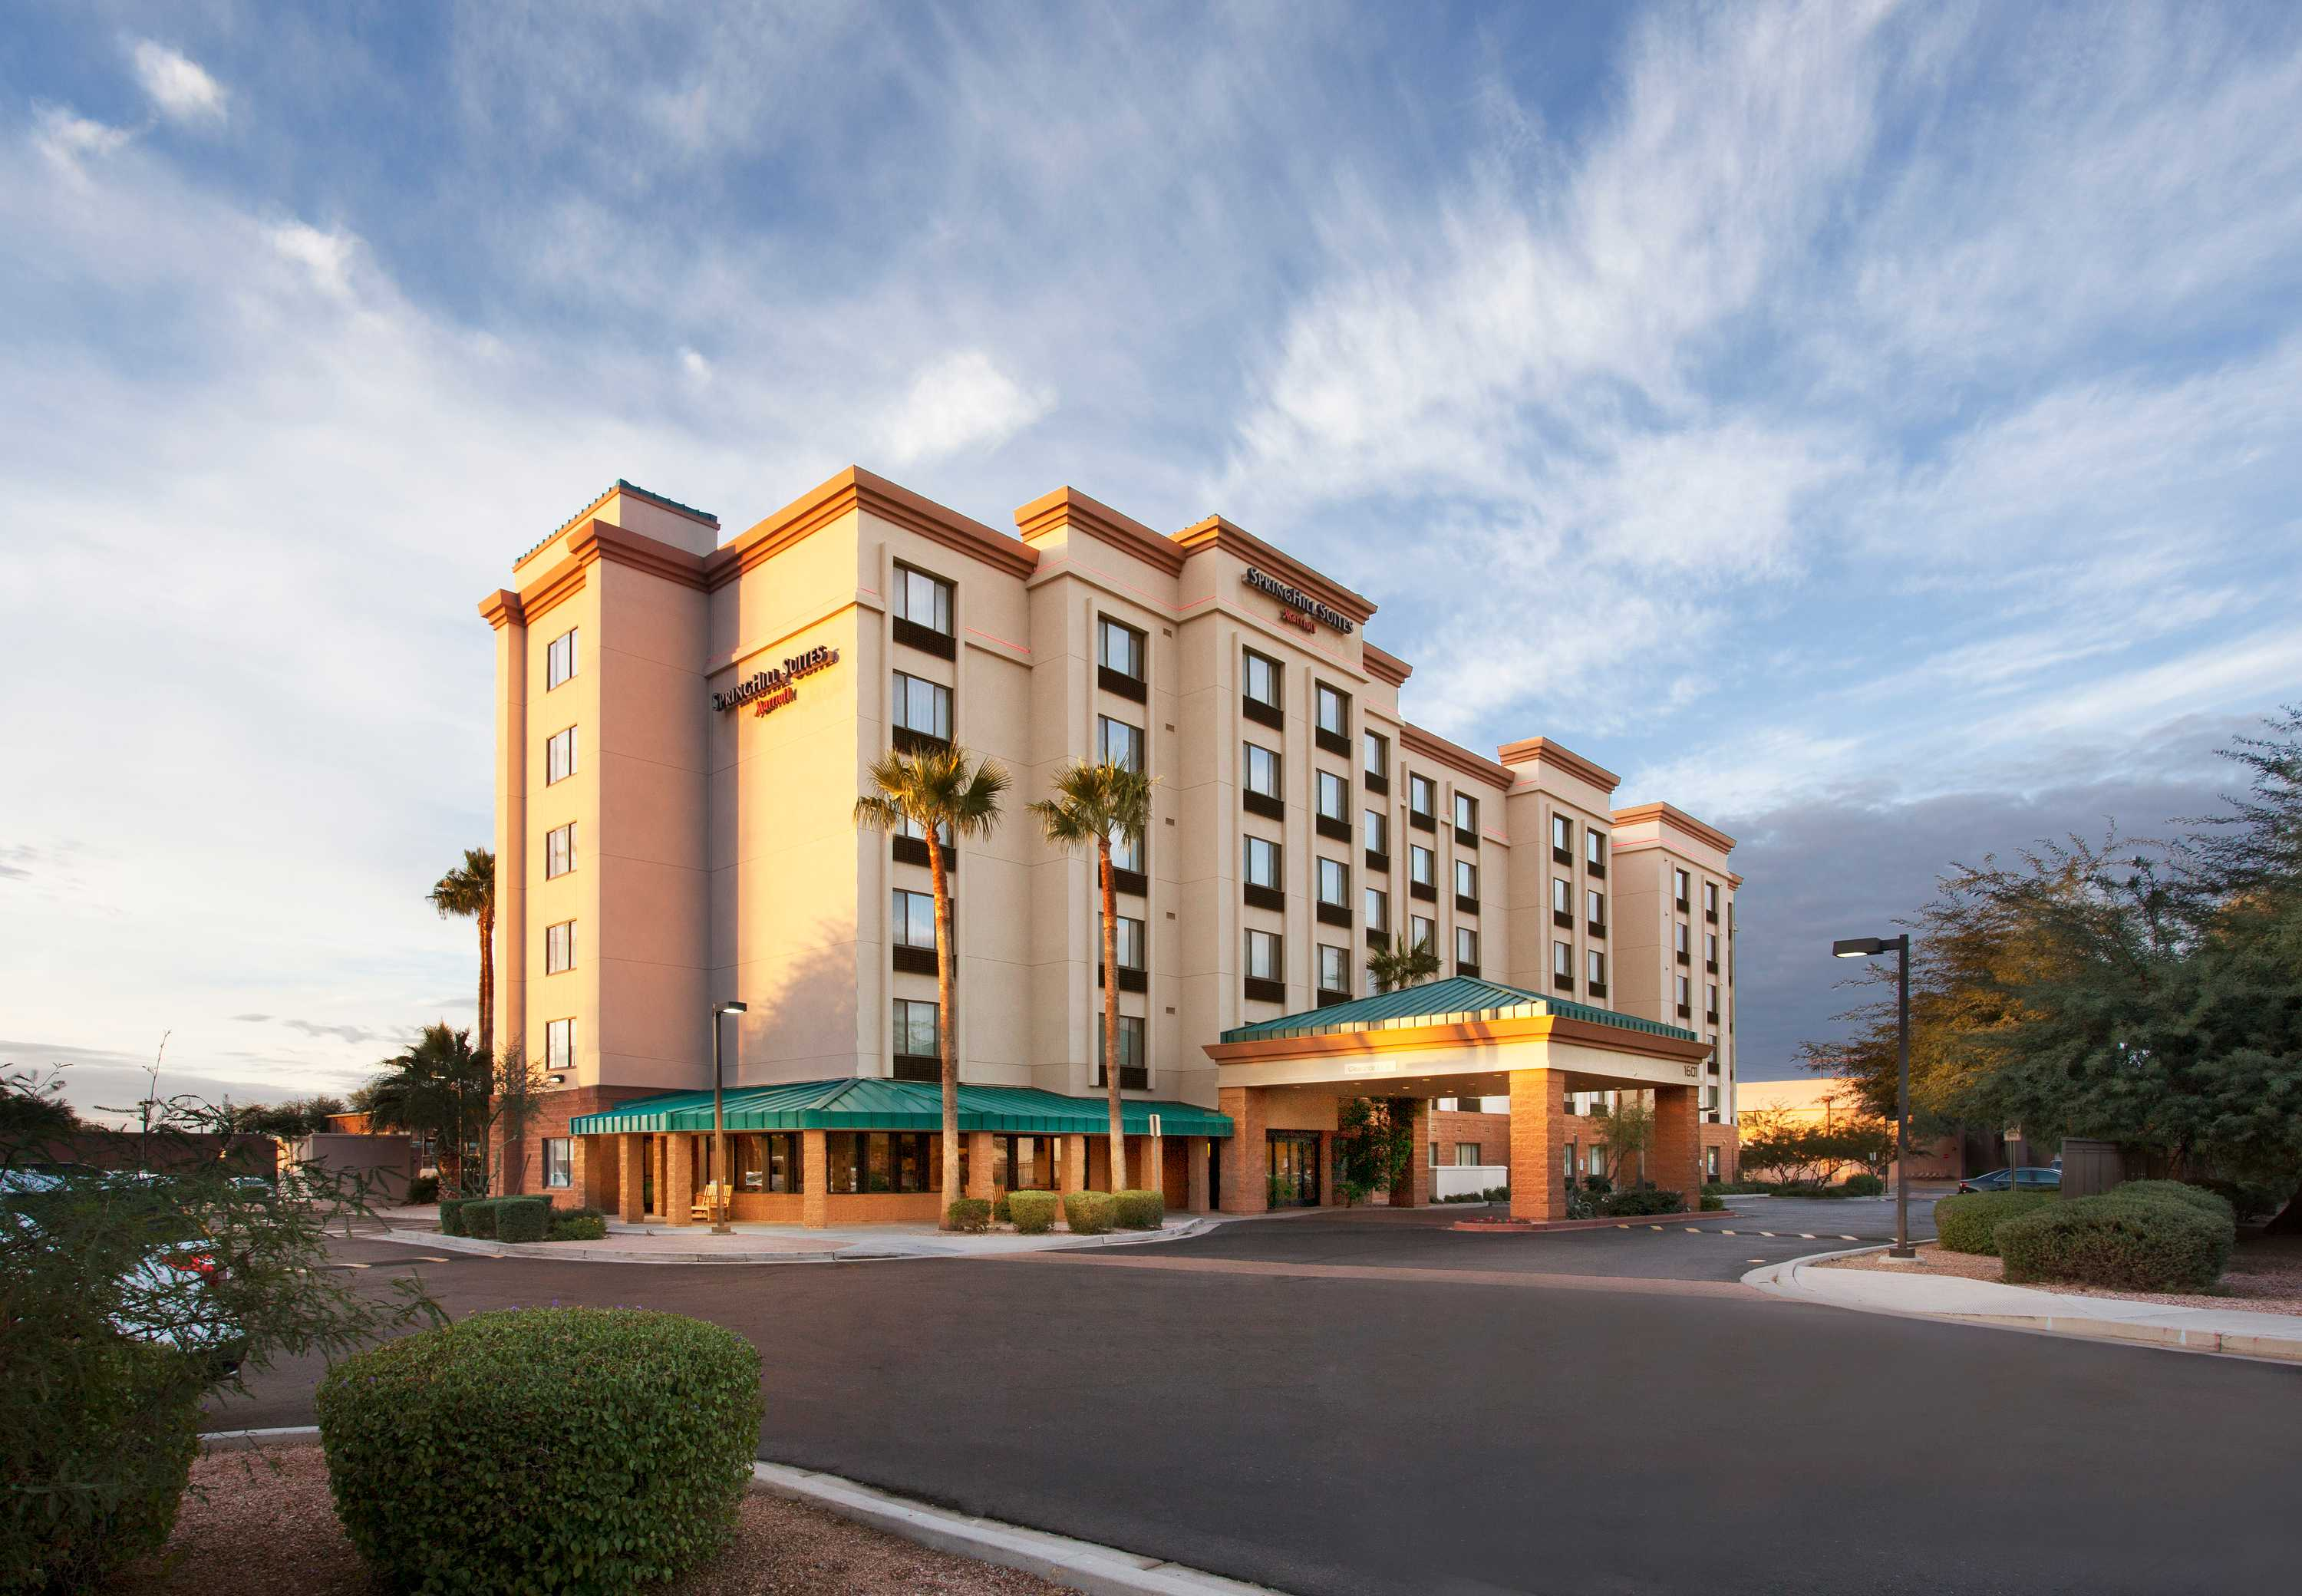 SpringHill Suites by Marriott Phoenix Tempe/Airport image 10